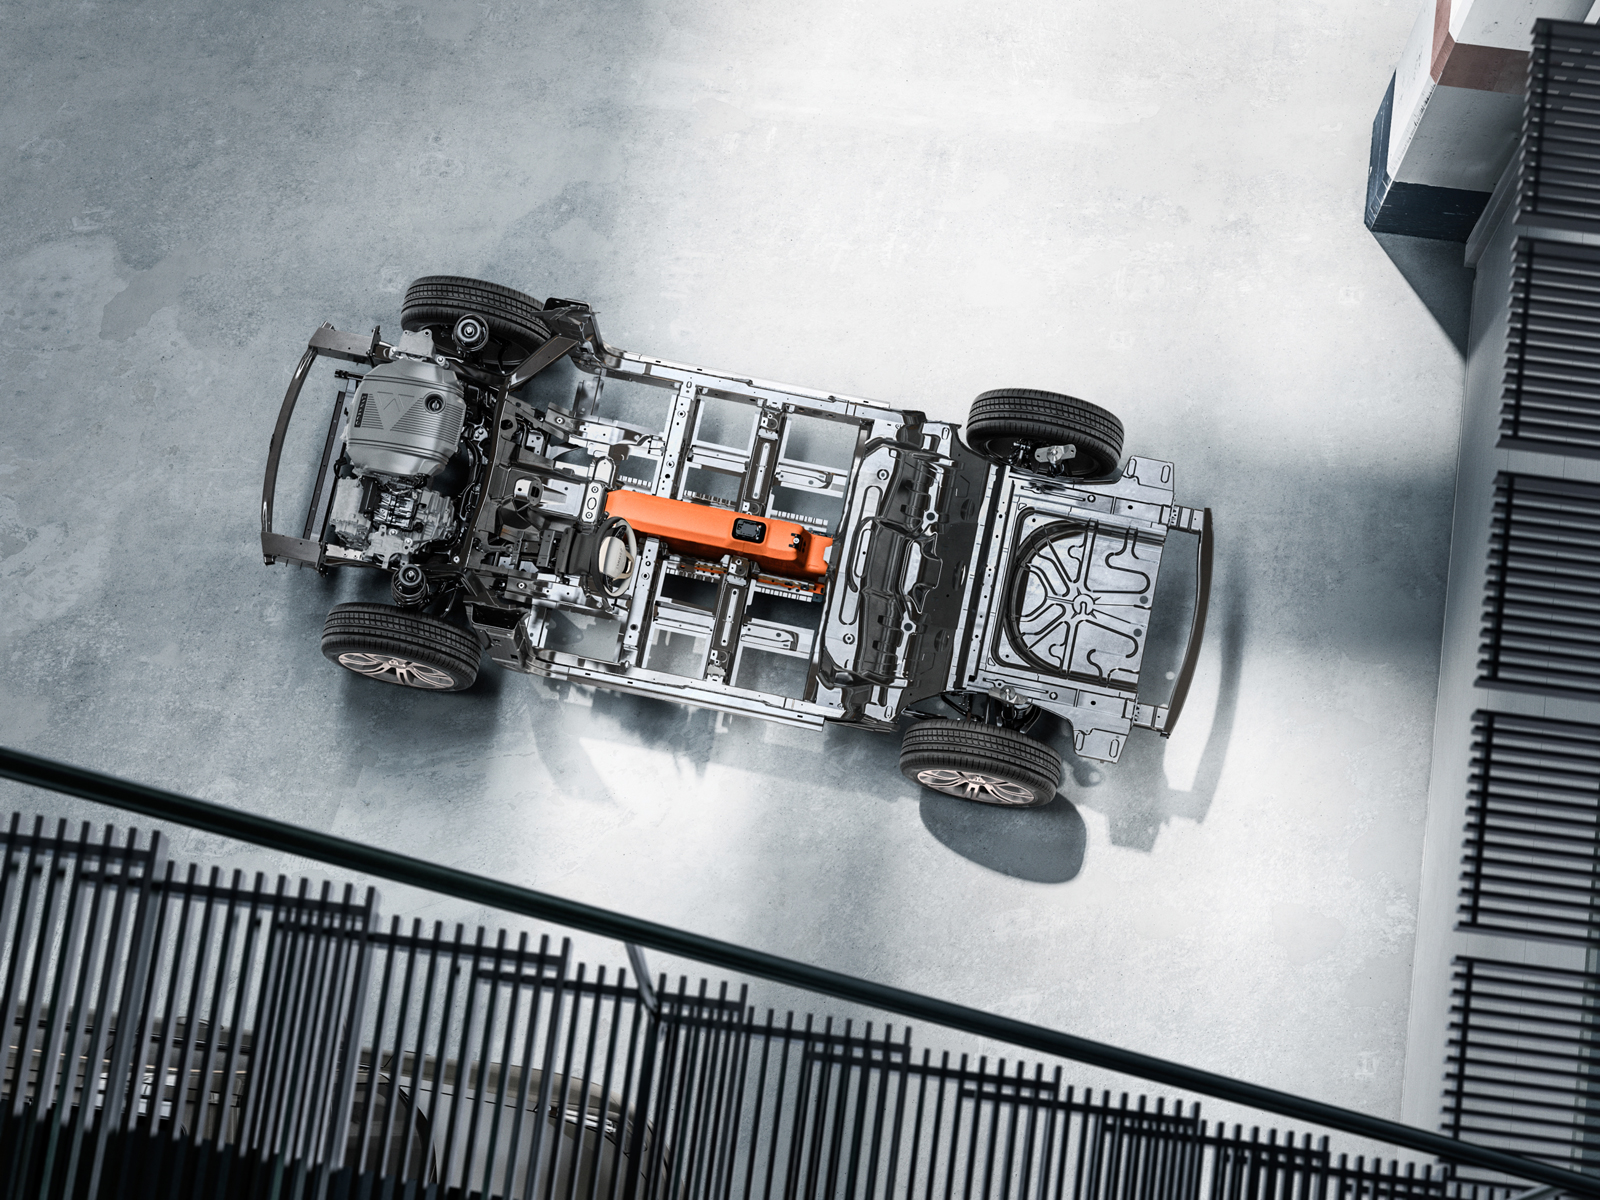 LYNK & CO, The Innovative Swedish Car Brand Looking To Change An Industry 13